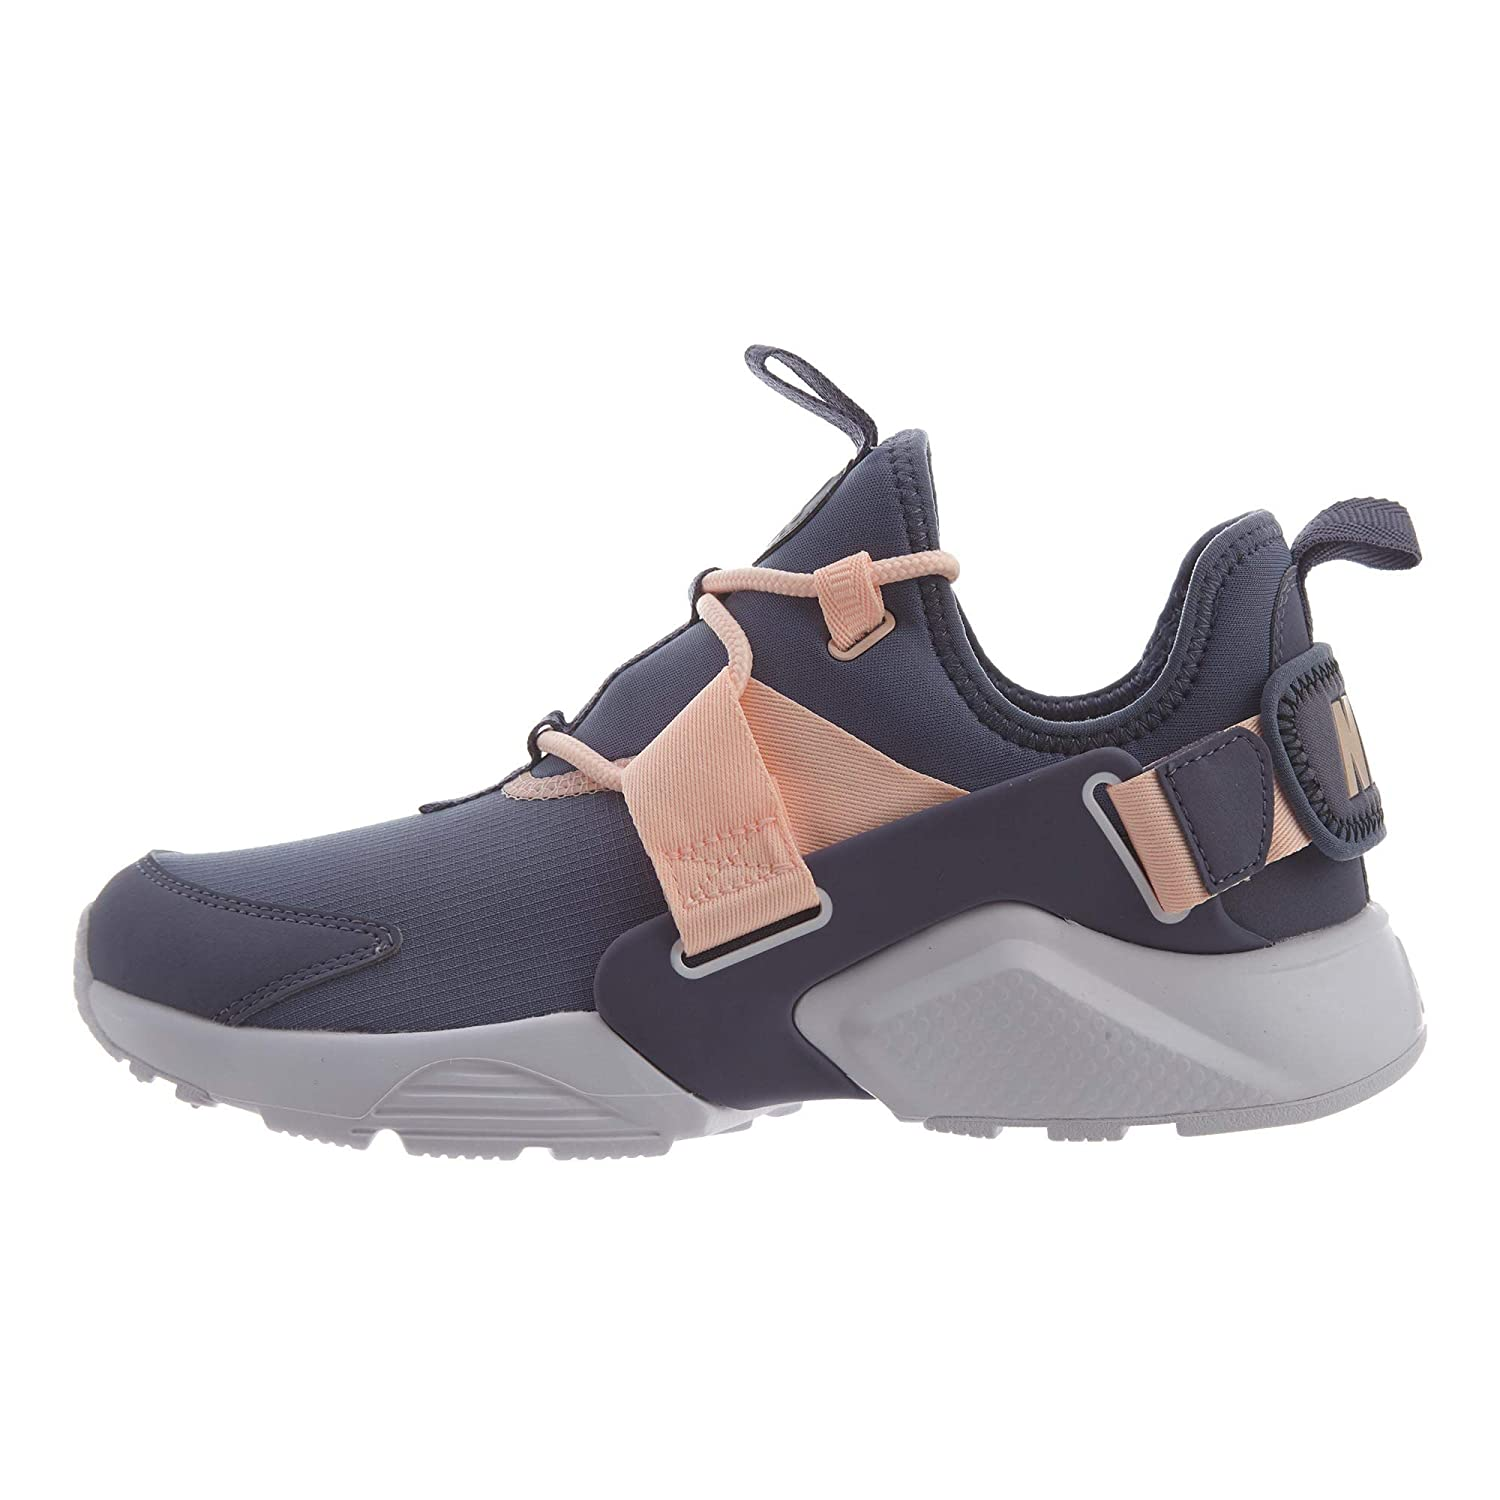 uk availability 7aede cac0a Amazon.com | Nike Air Huarache City Low Womens | Road Running